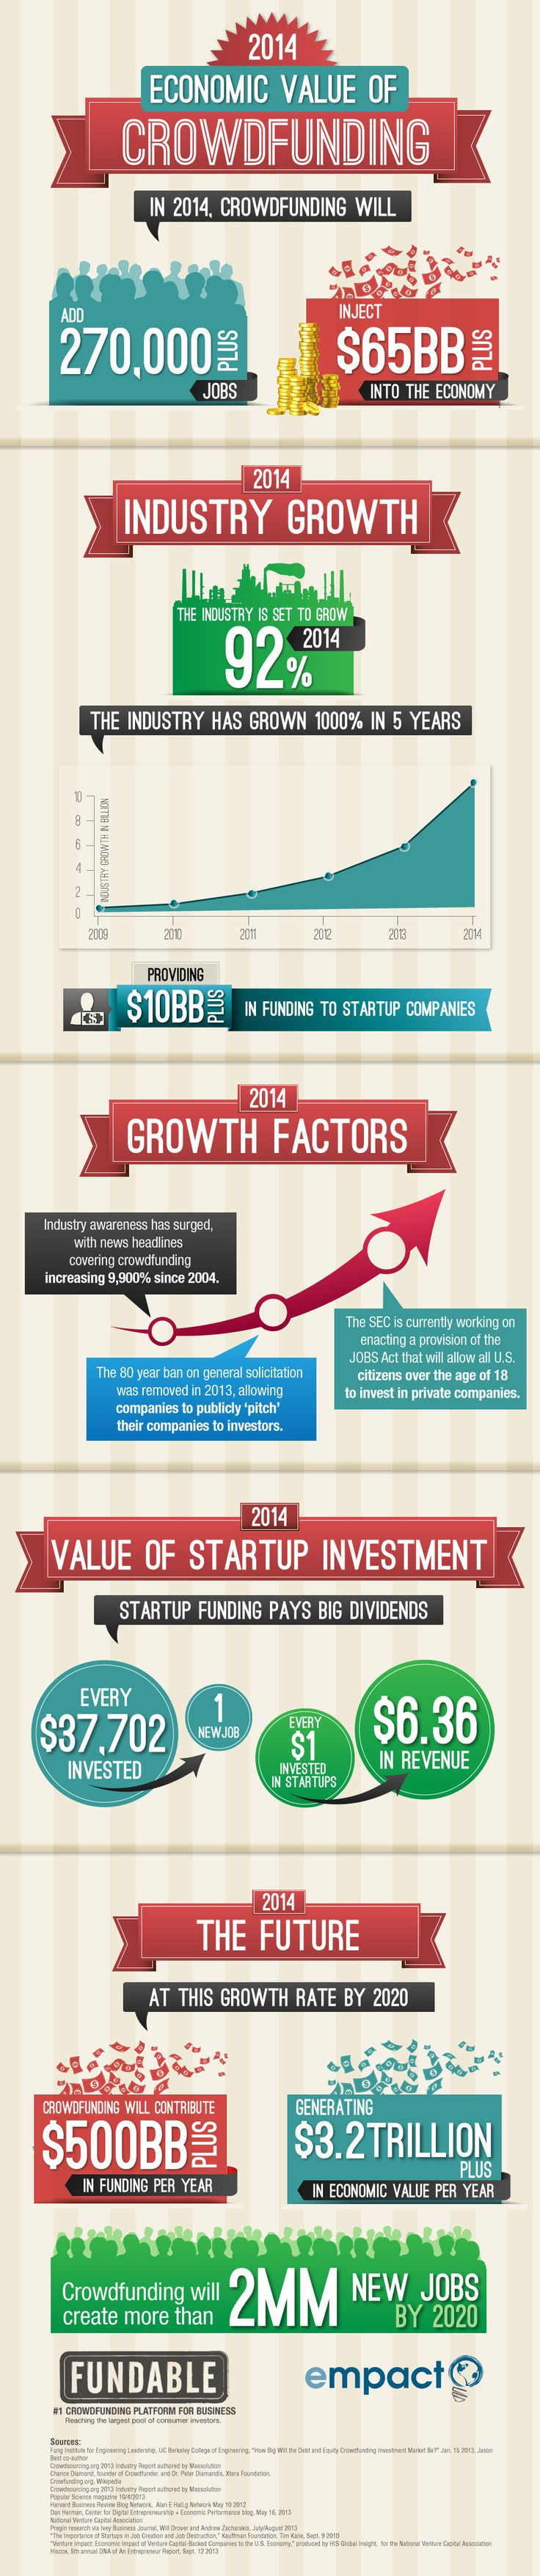 #Crowdfunding infographic from Entrepreneur, a U.S. magazine: http://www.entrepreneur.com/article/230912